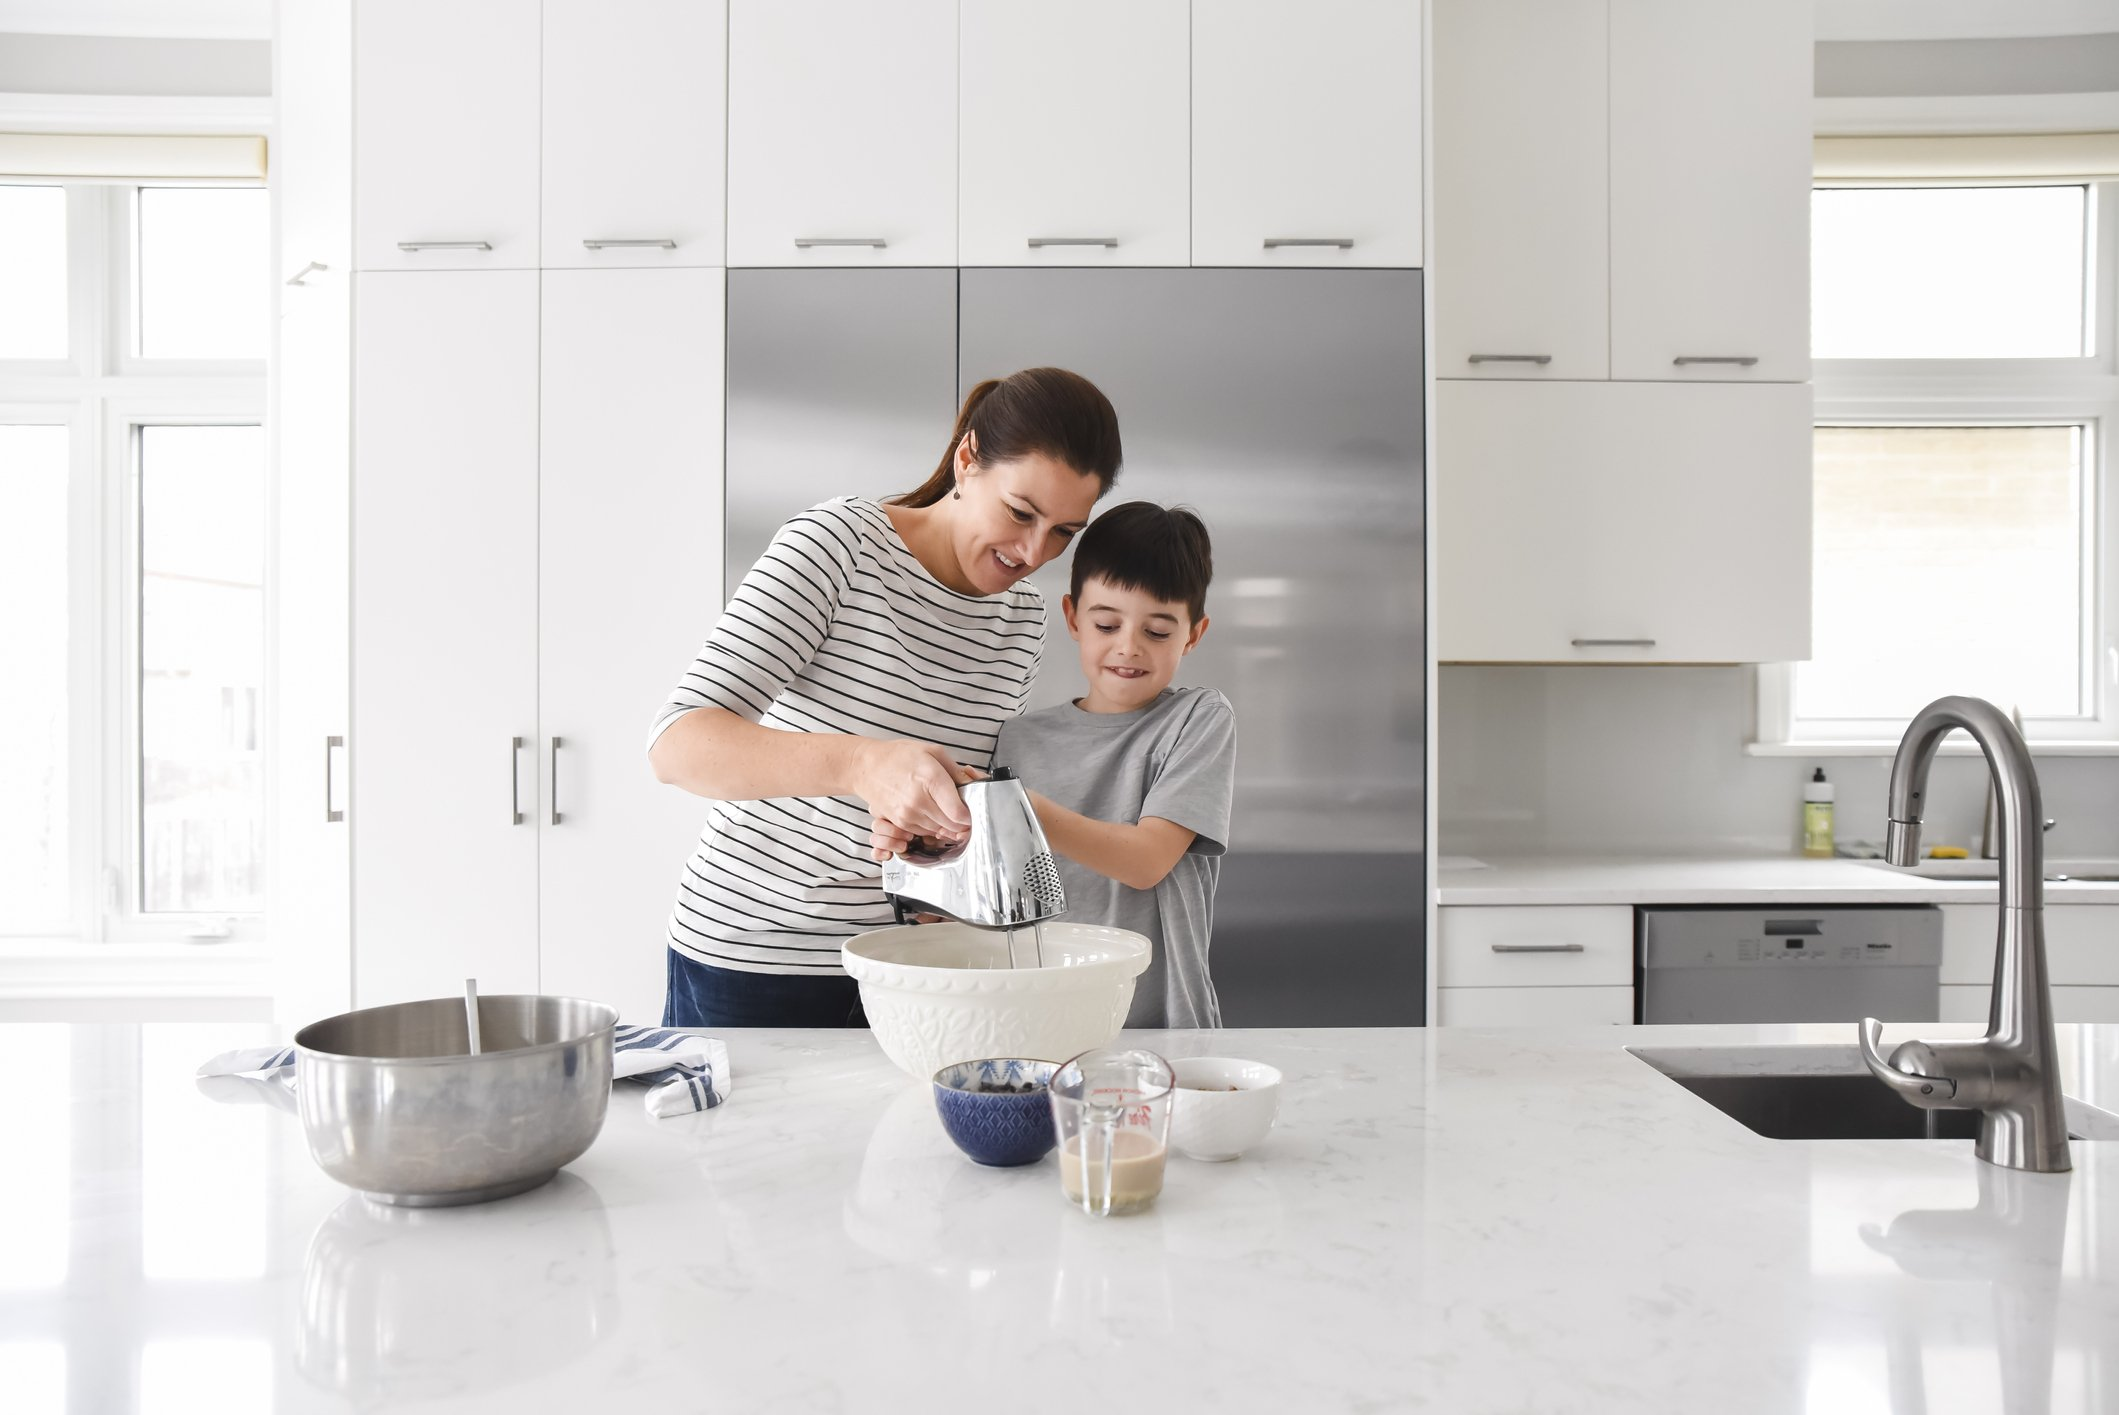 Mother helping young son use a mixer while cooking in a modern kitchen | Photo: Getty Images